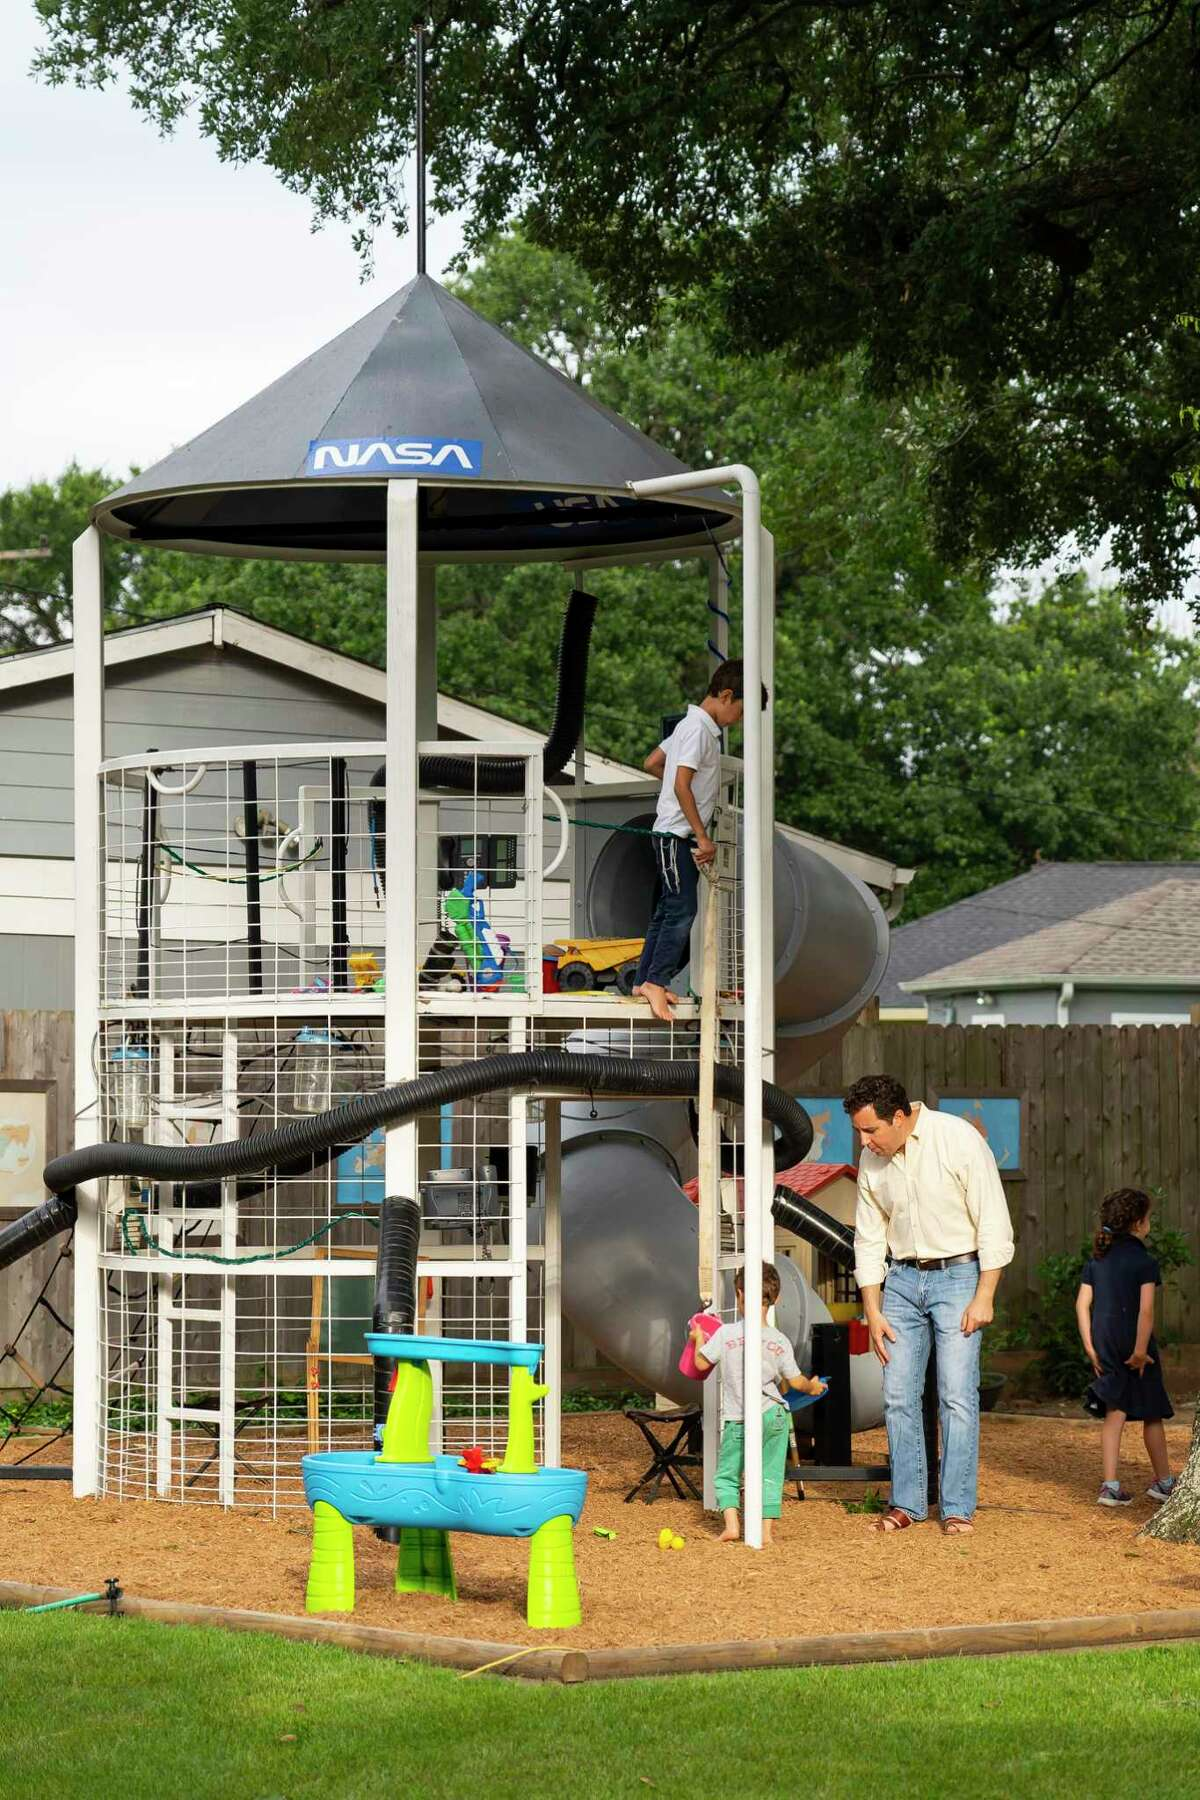 Danny Goldberg created playground equipment shaped to look like a rocket.